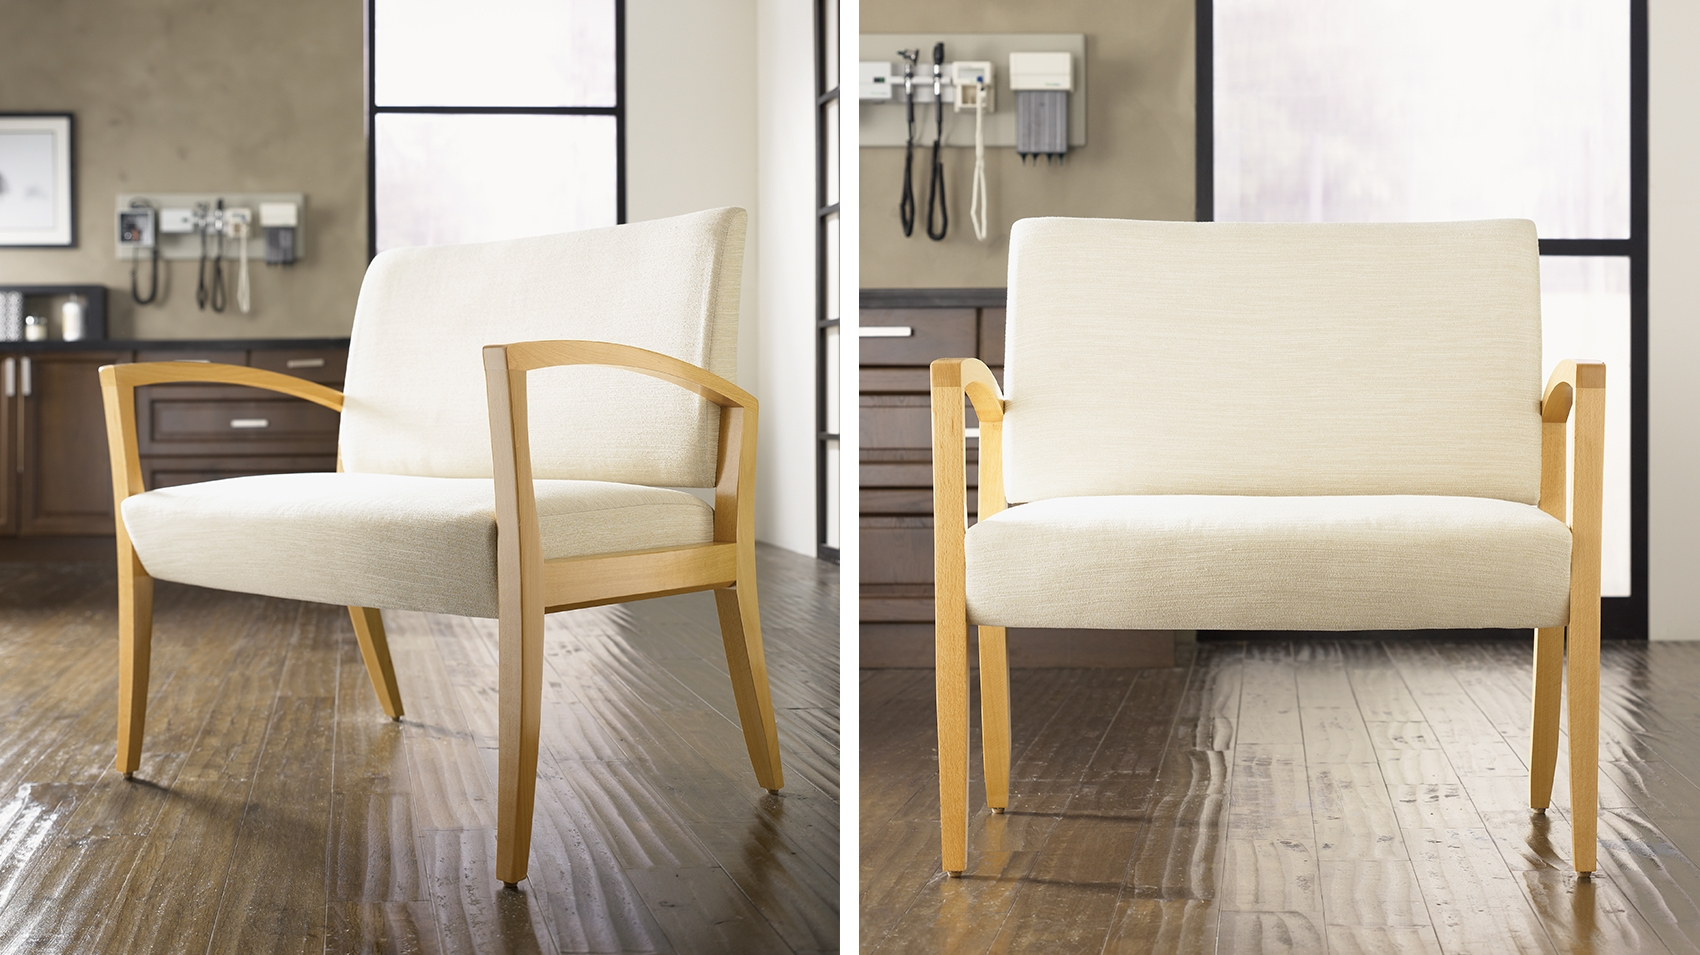 Hospital seating, wide hospital chair, white chair